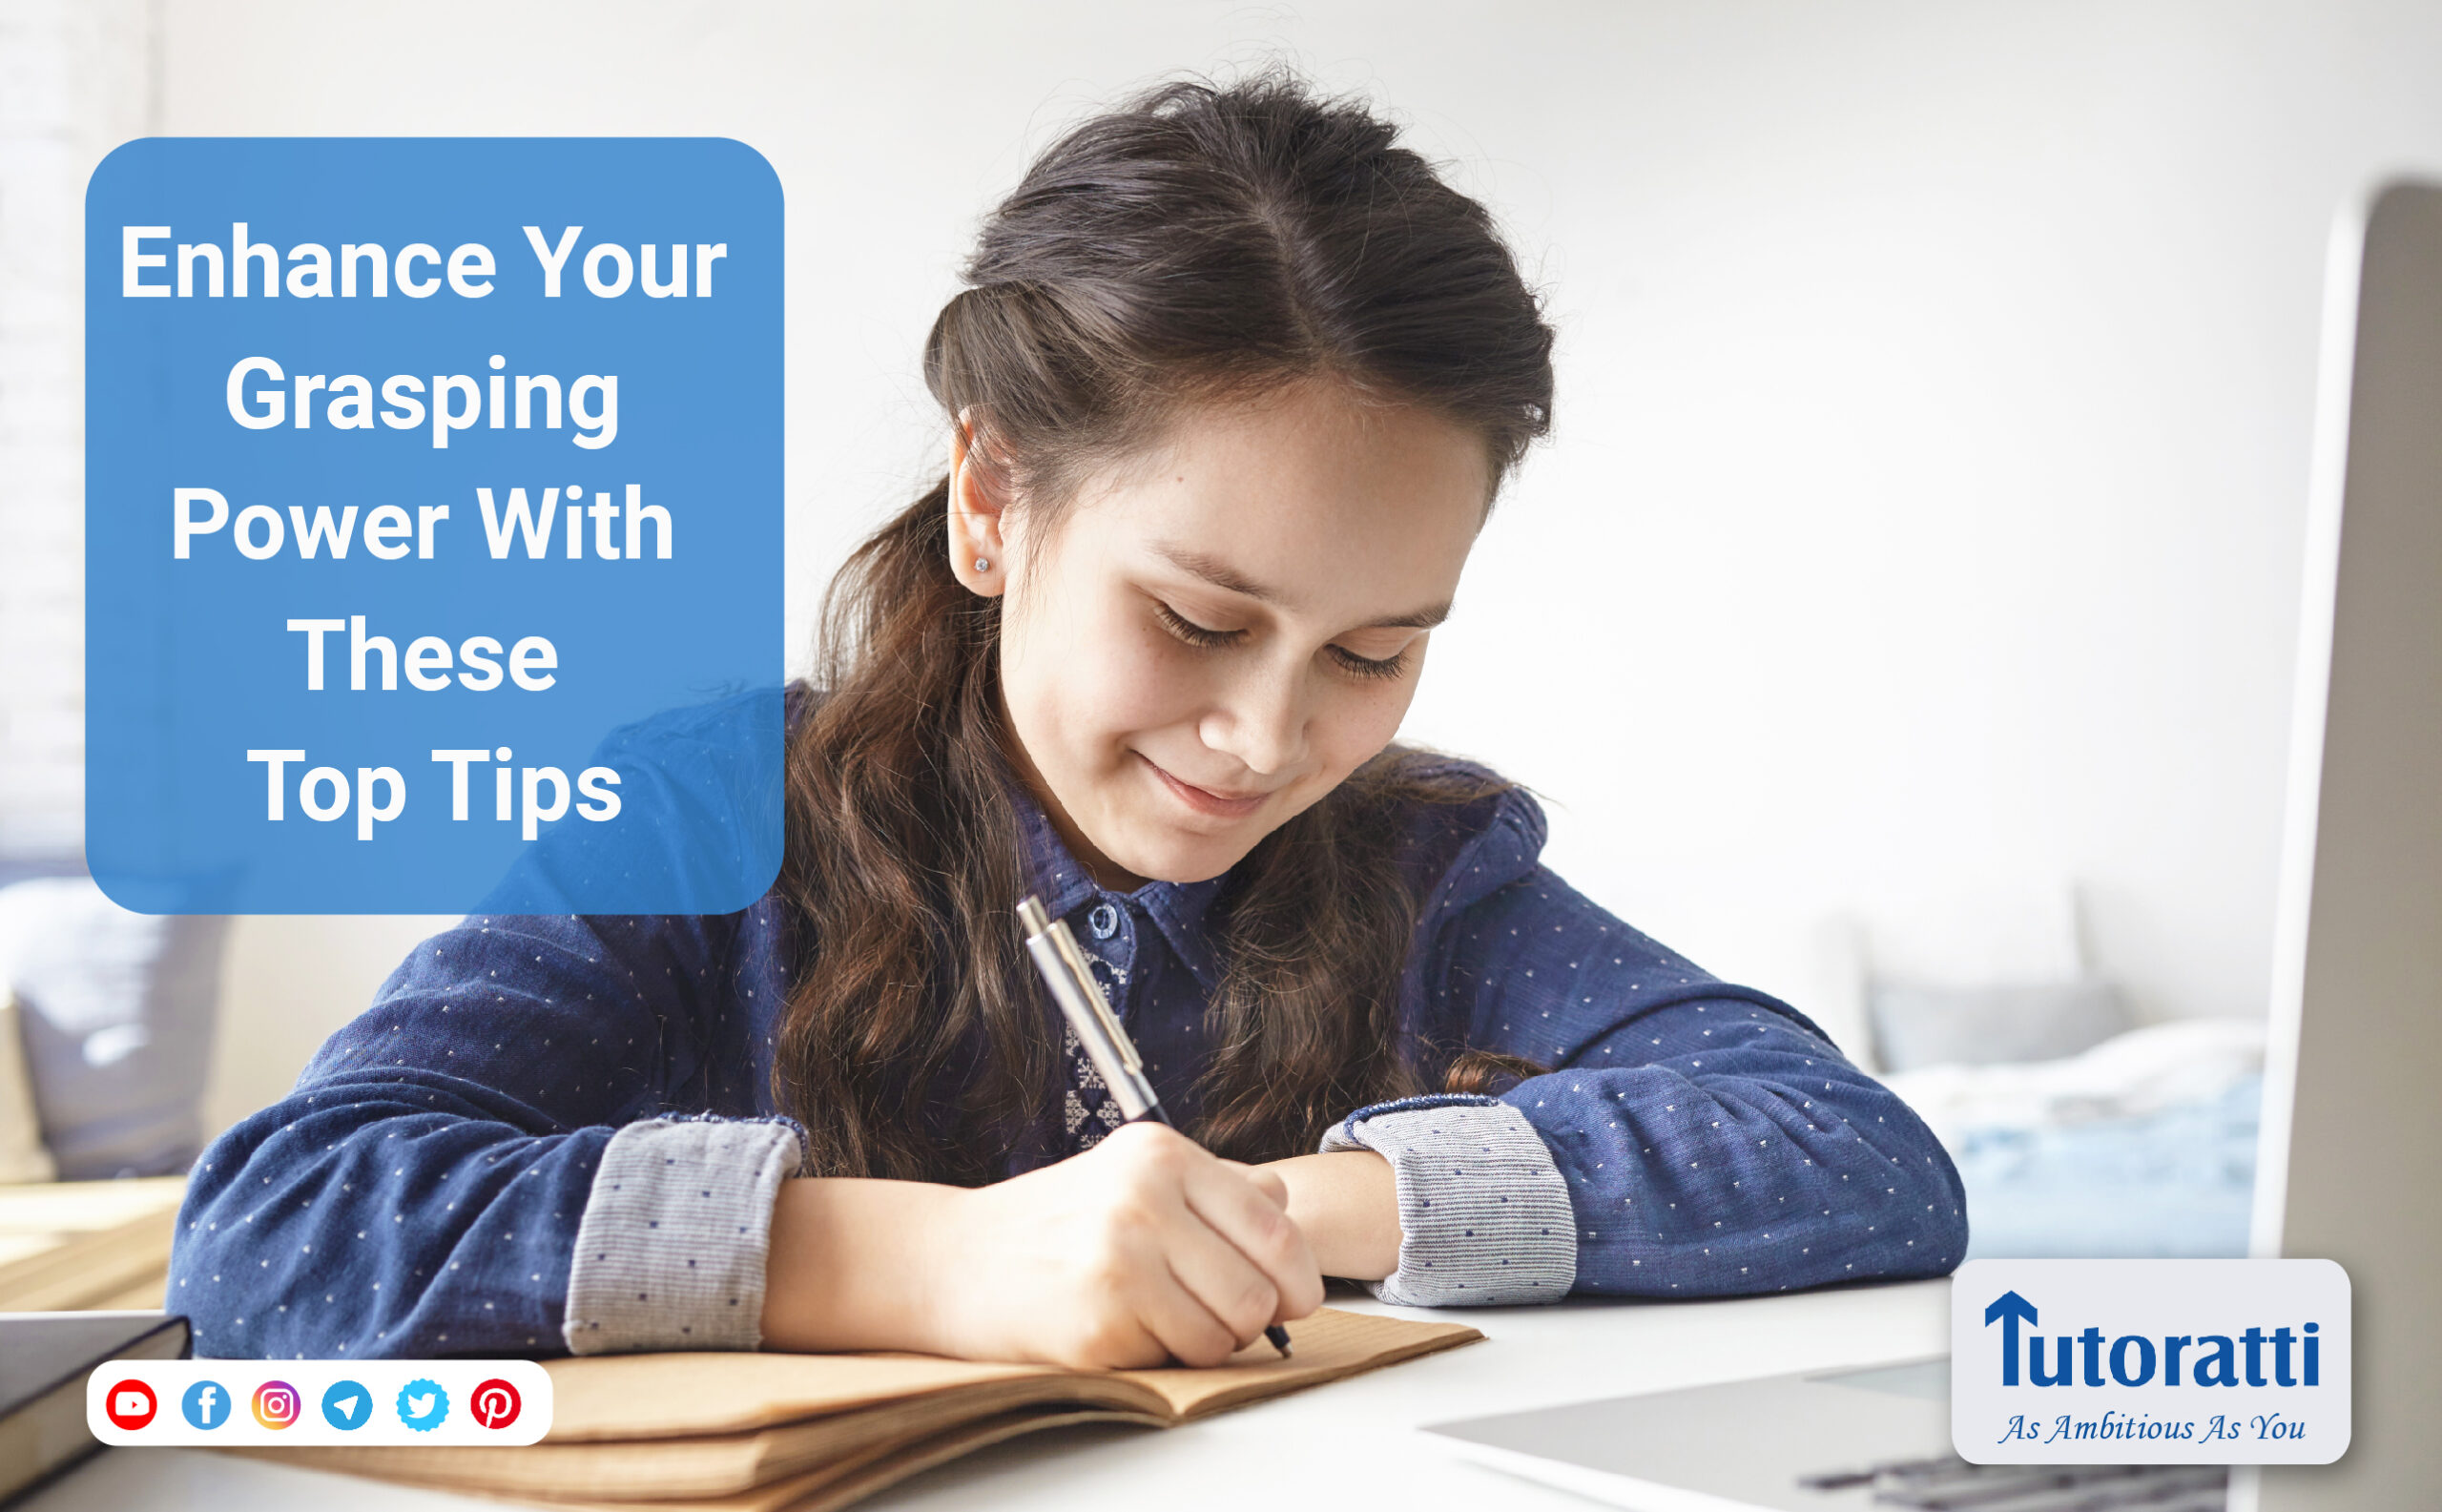 Enhance Your Grasping Power With These Top Tips